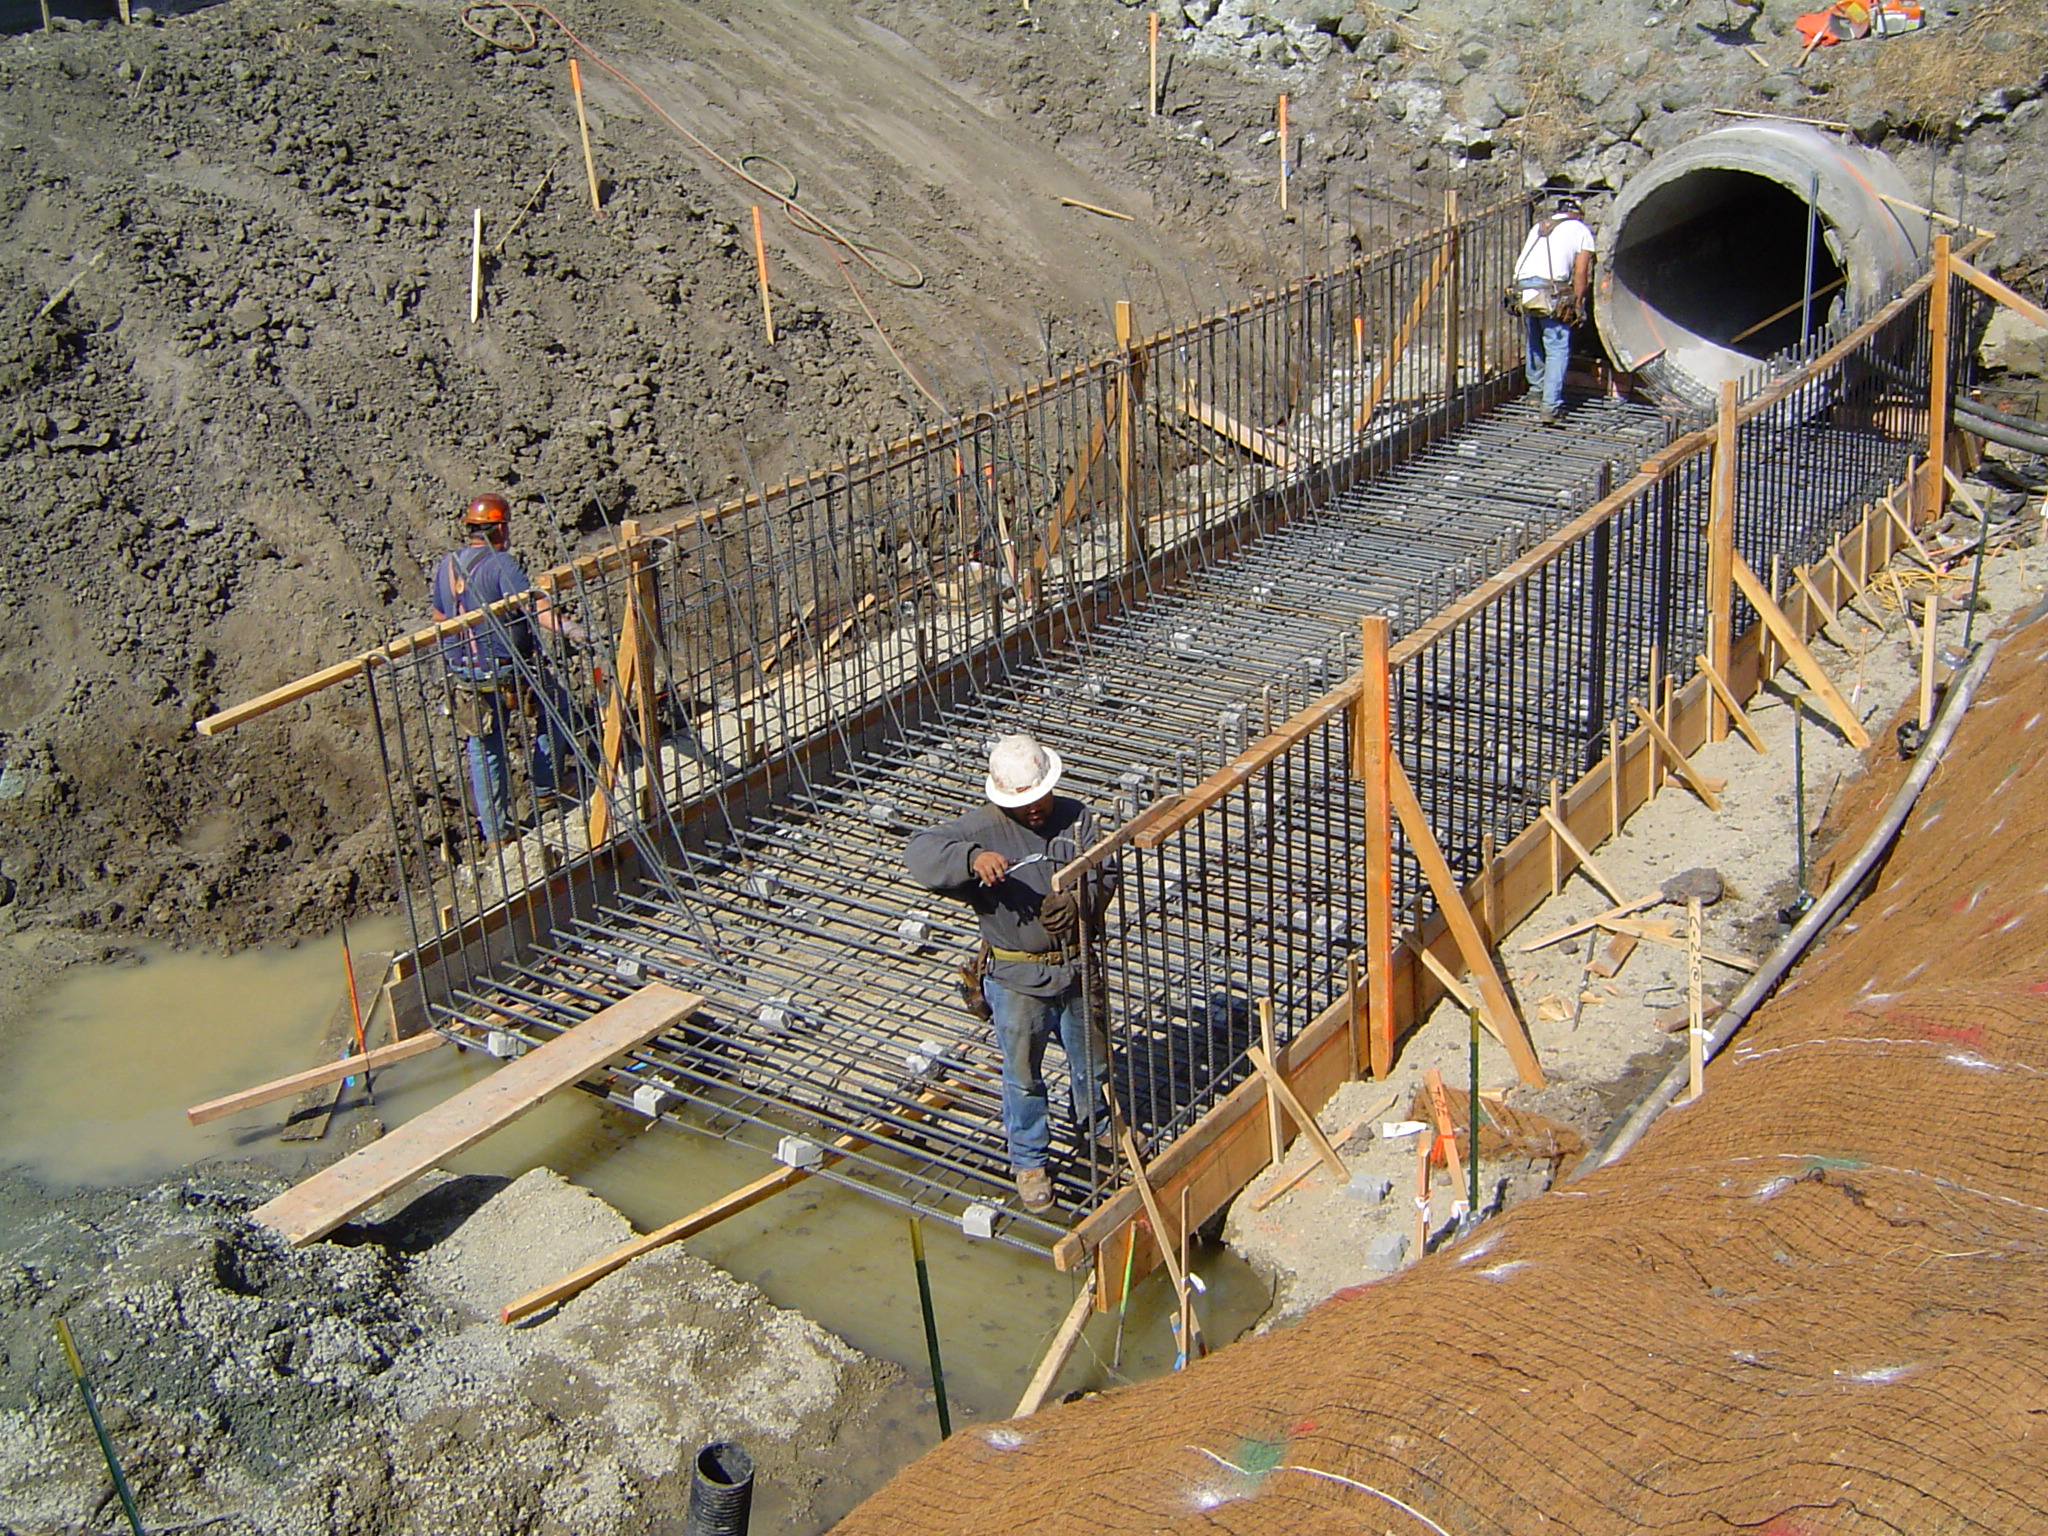 Workers building a support structure for a drainage culvert